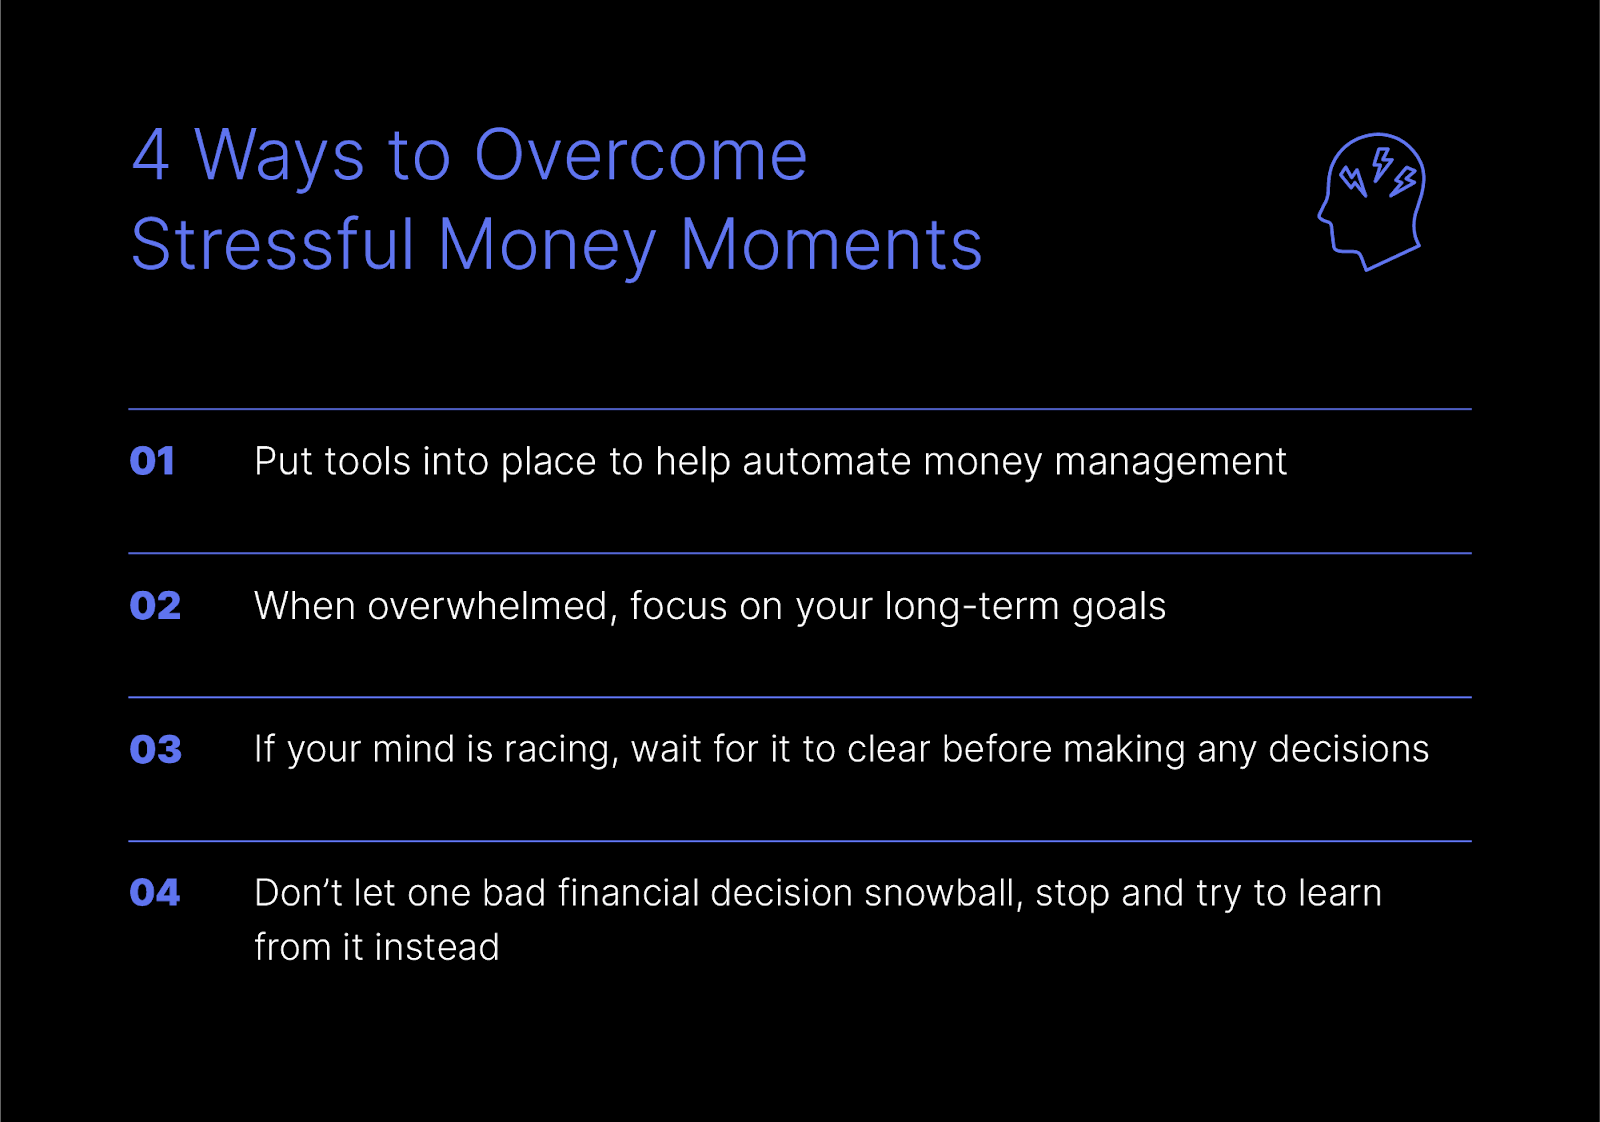 4 ways to overcome stressful money moments